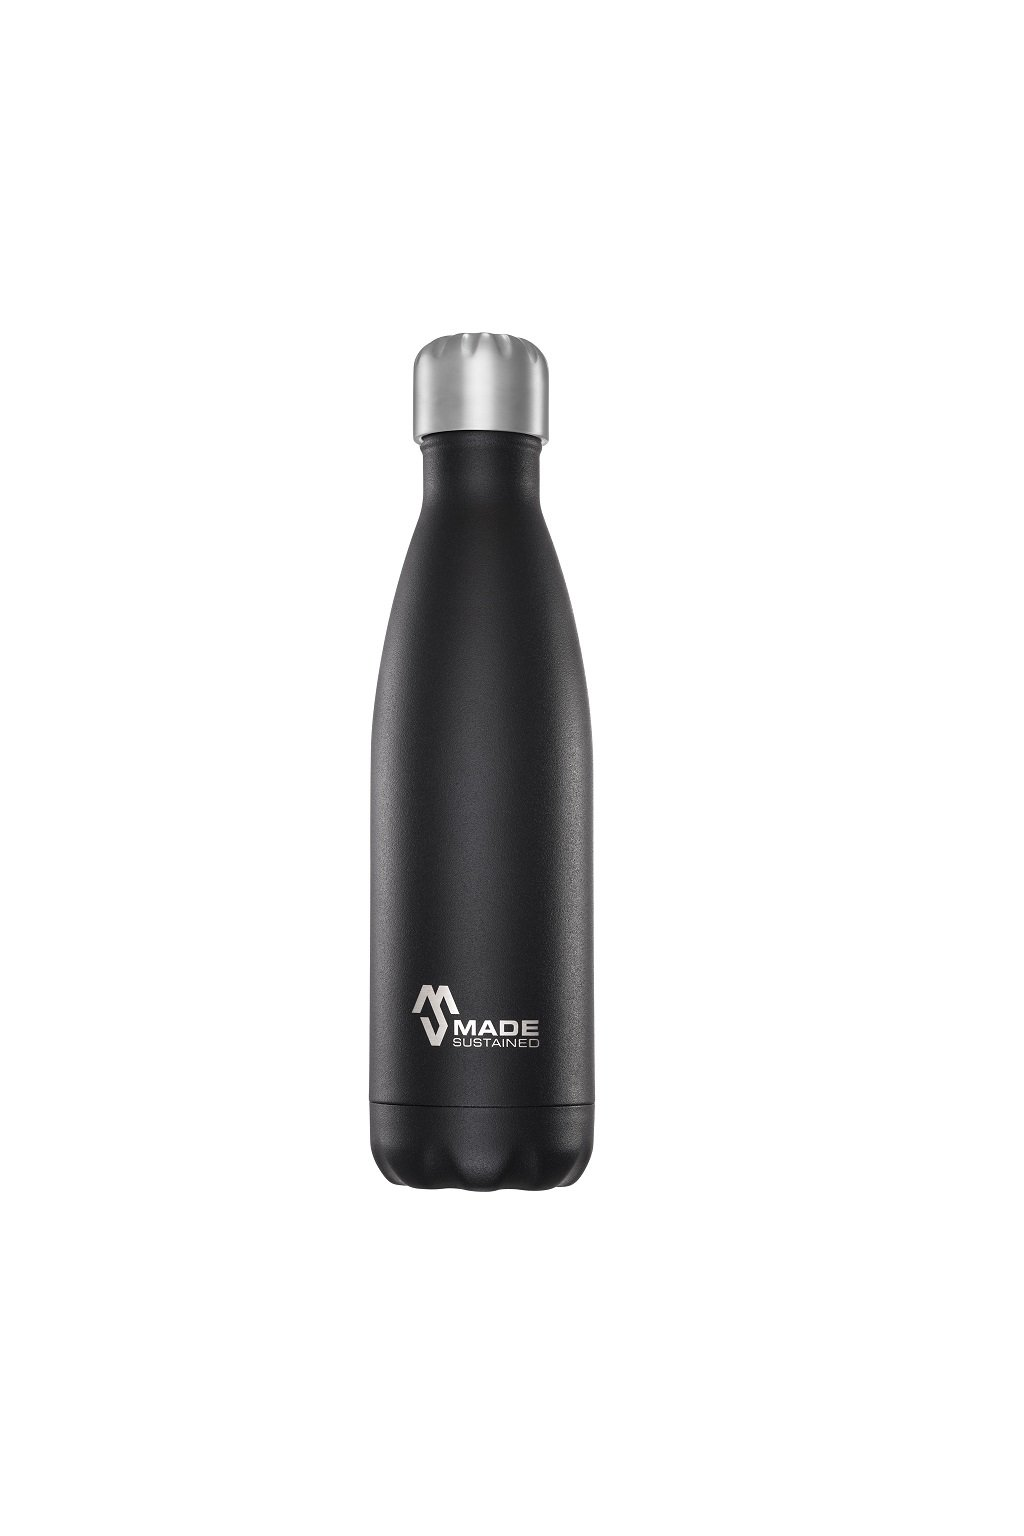 Made Sustained 500ml insulated Knight bottle Black Tie web